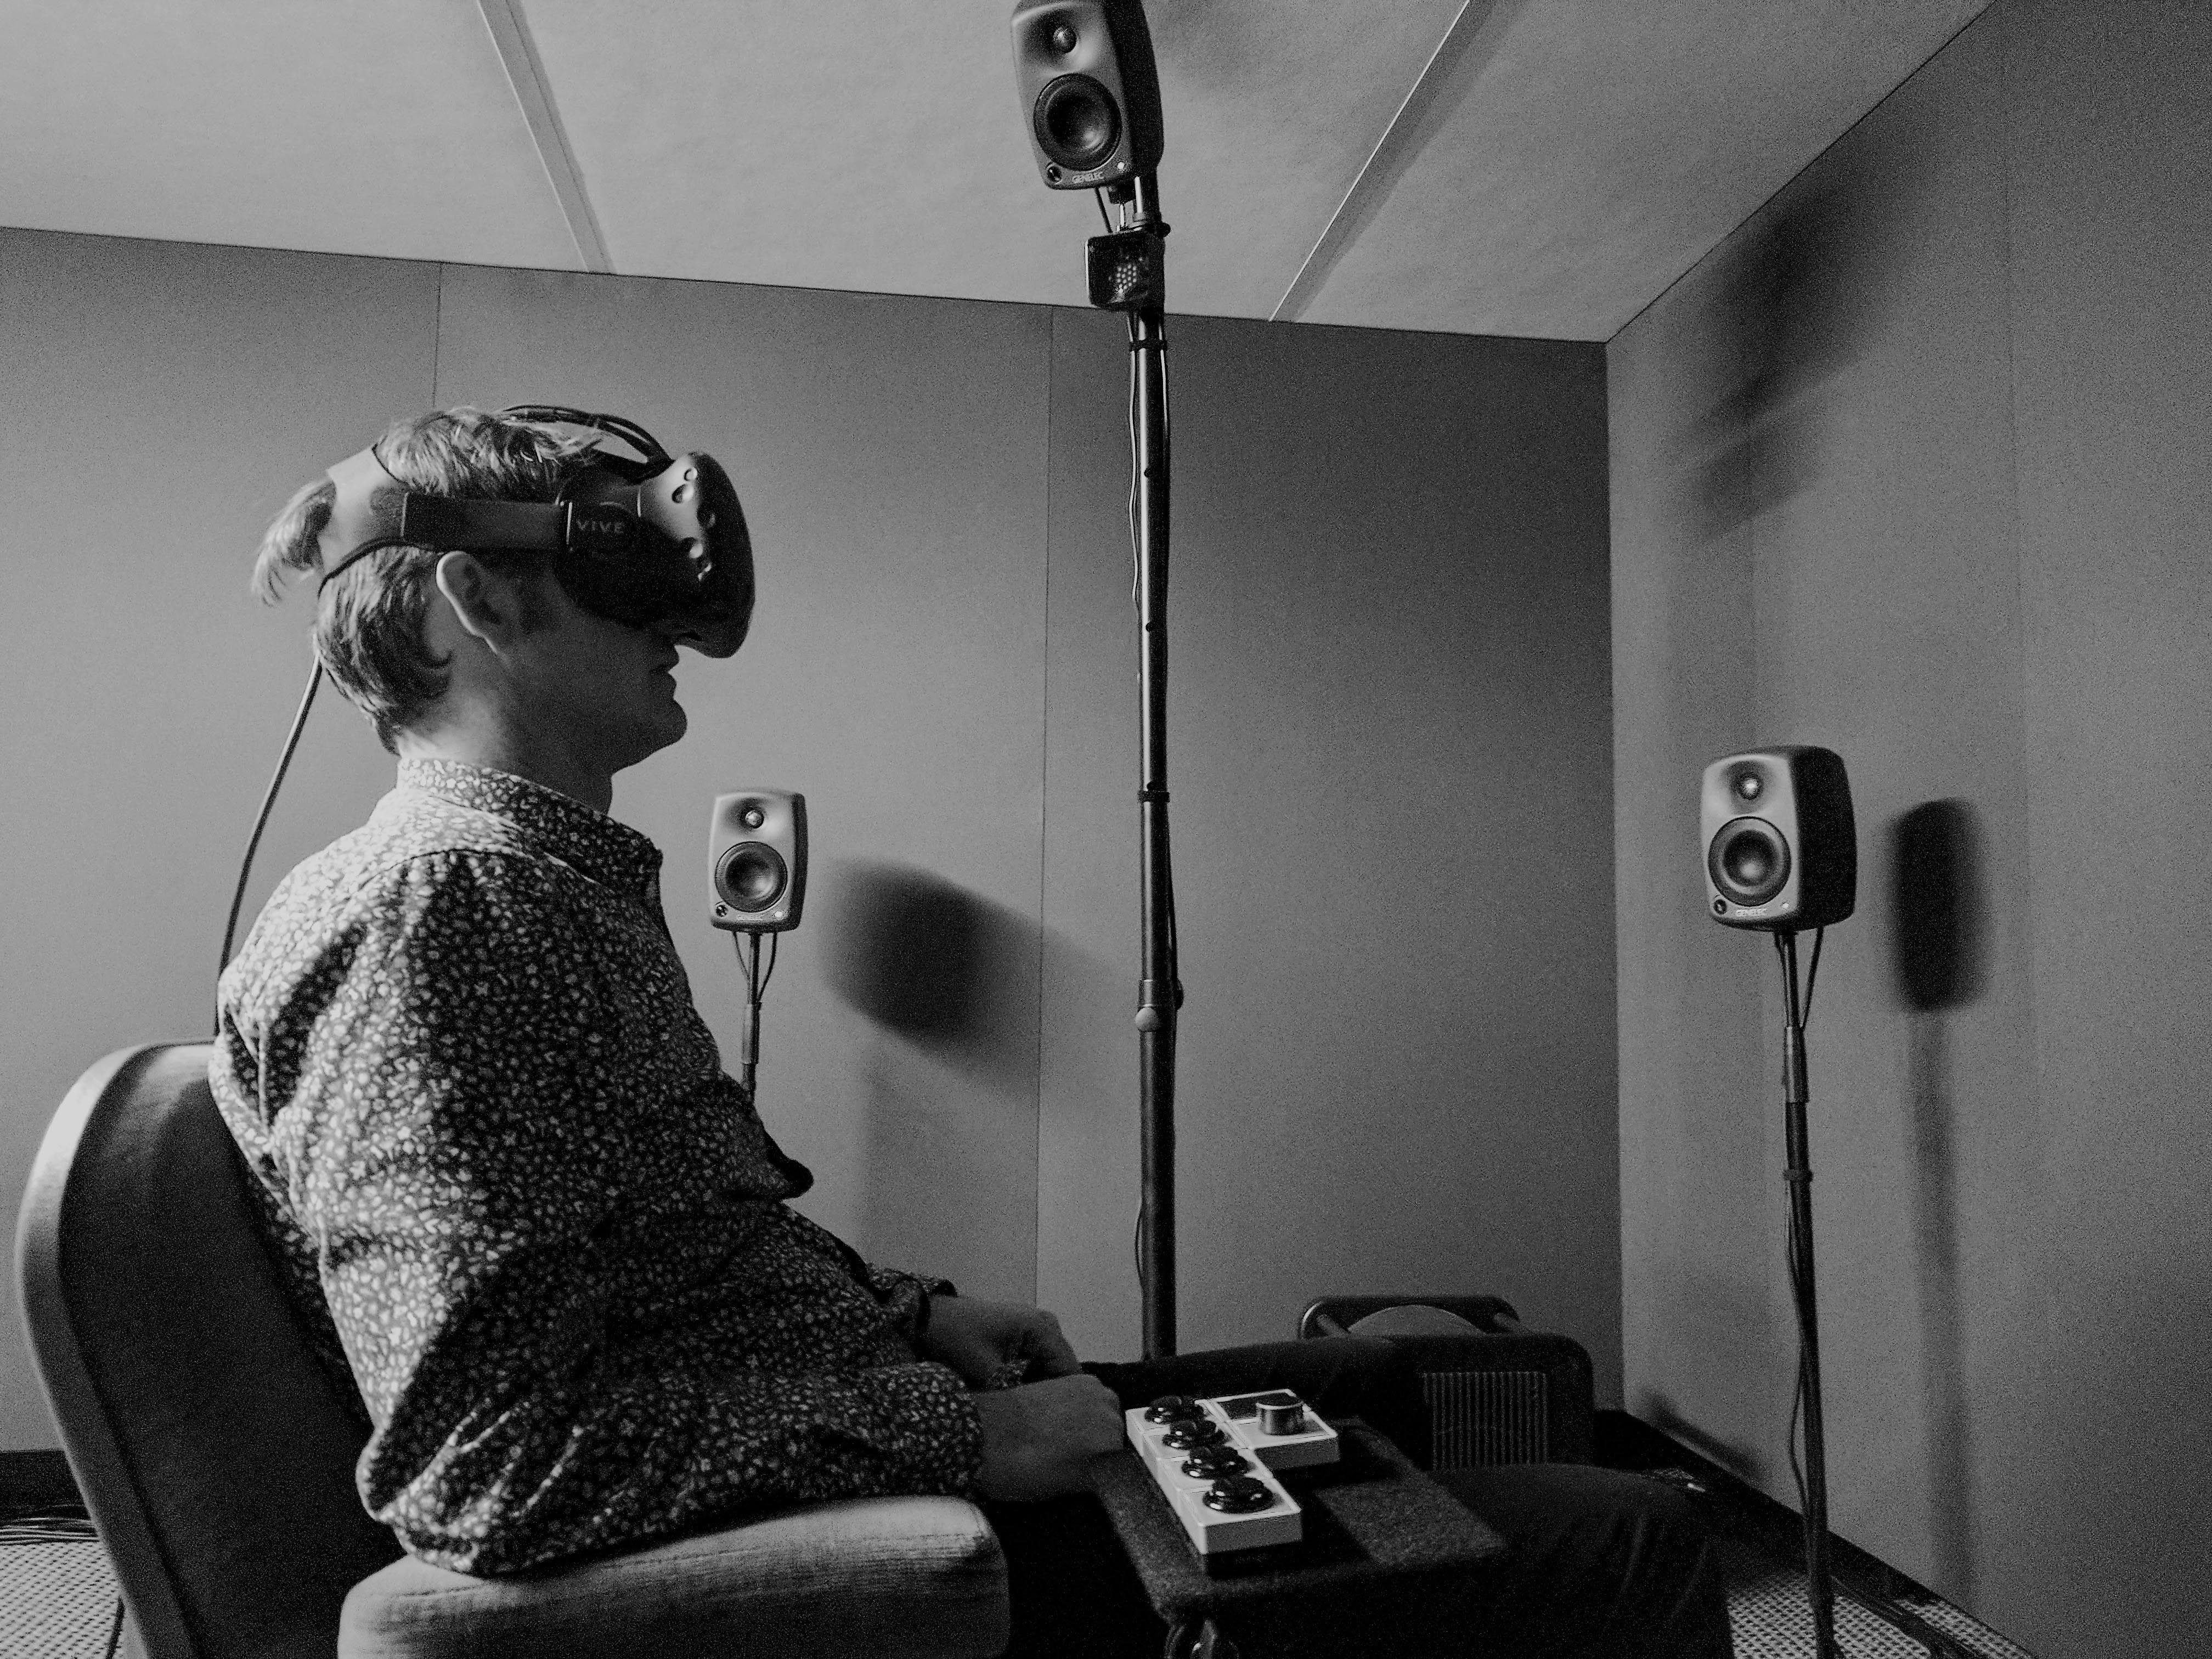 Auralisation is Go - The Listening Room Opens in Auckland